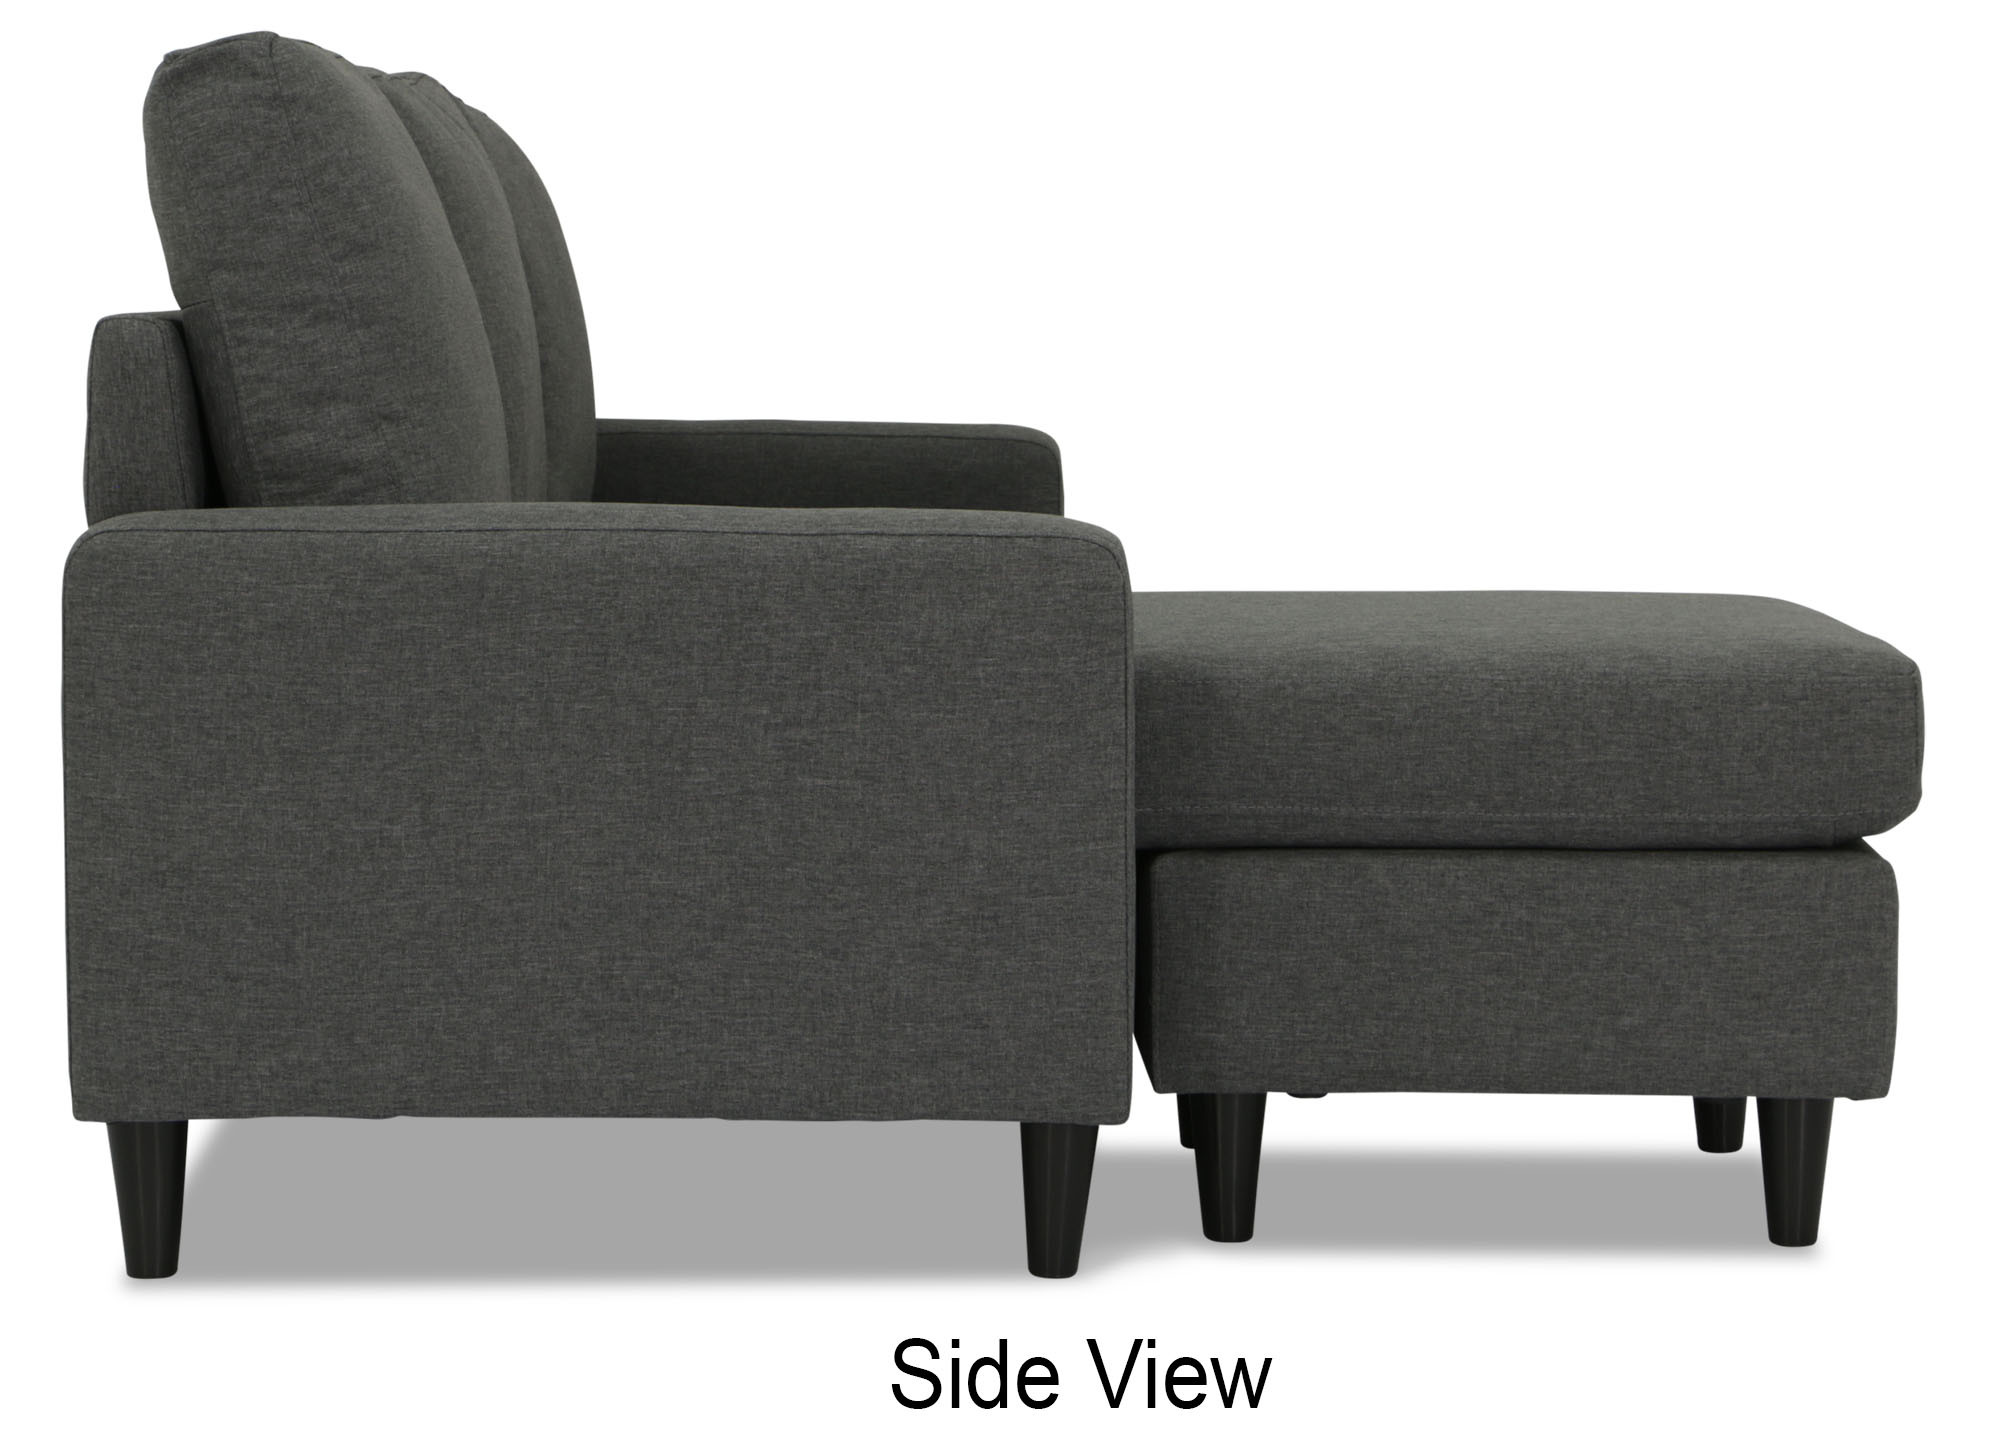 L Shape Sofa Set Snapdeal L Type Sofa Dimensions Awesome Home